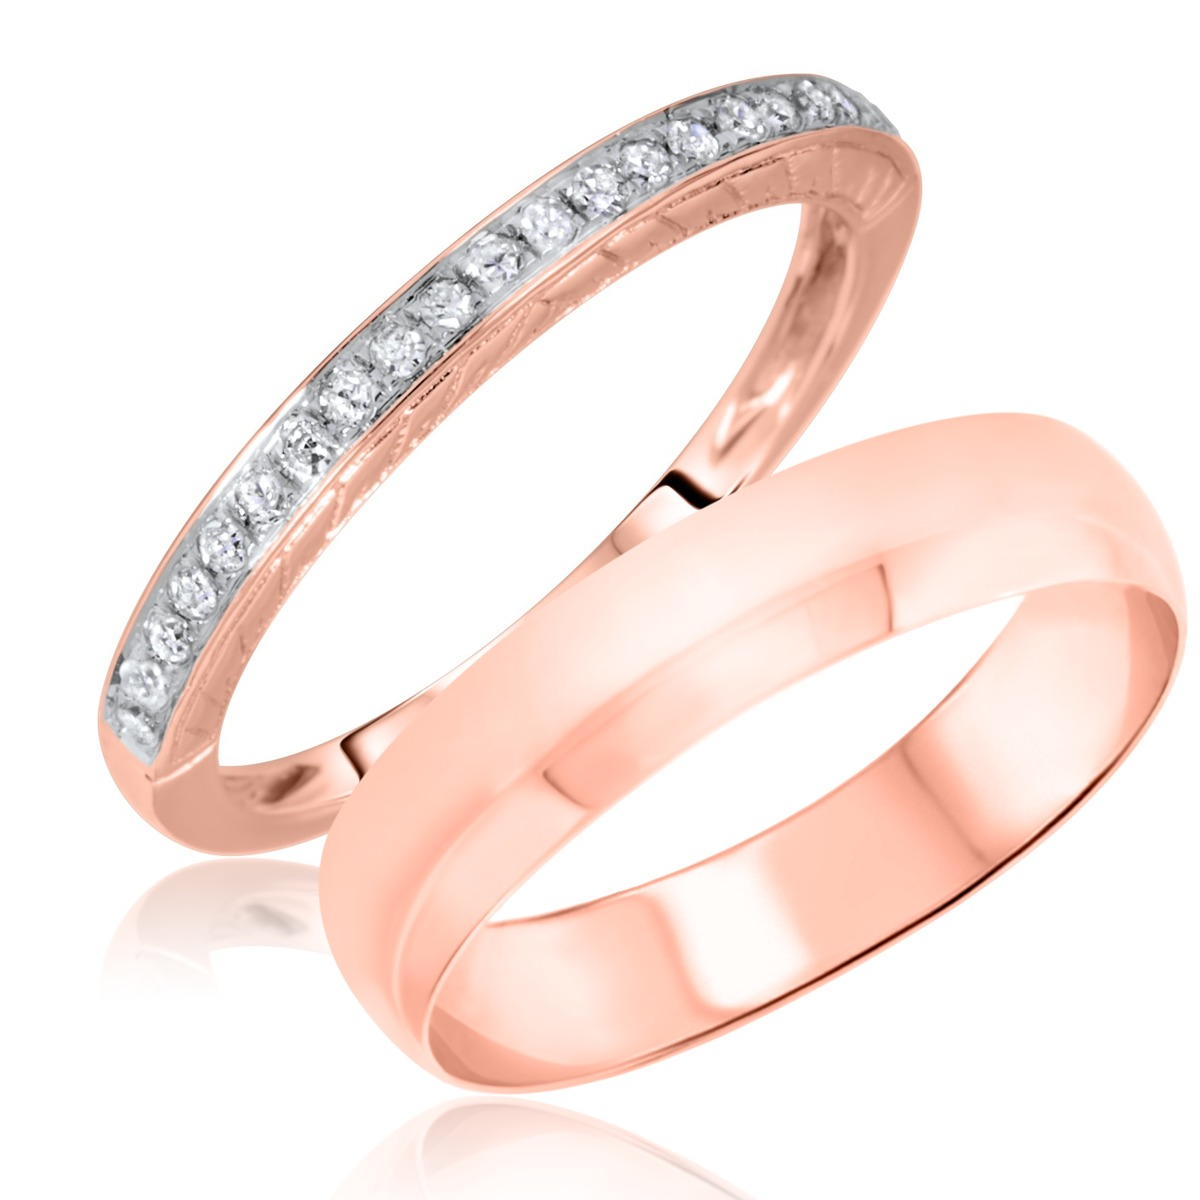 1/8 Carat T.W. Round Cut Diamond His and Hers Wedding Band Set 14K Rose Gold